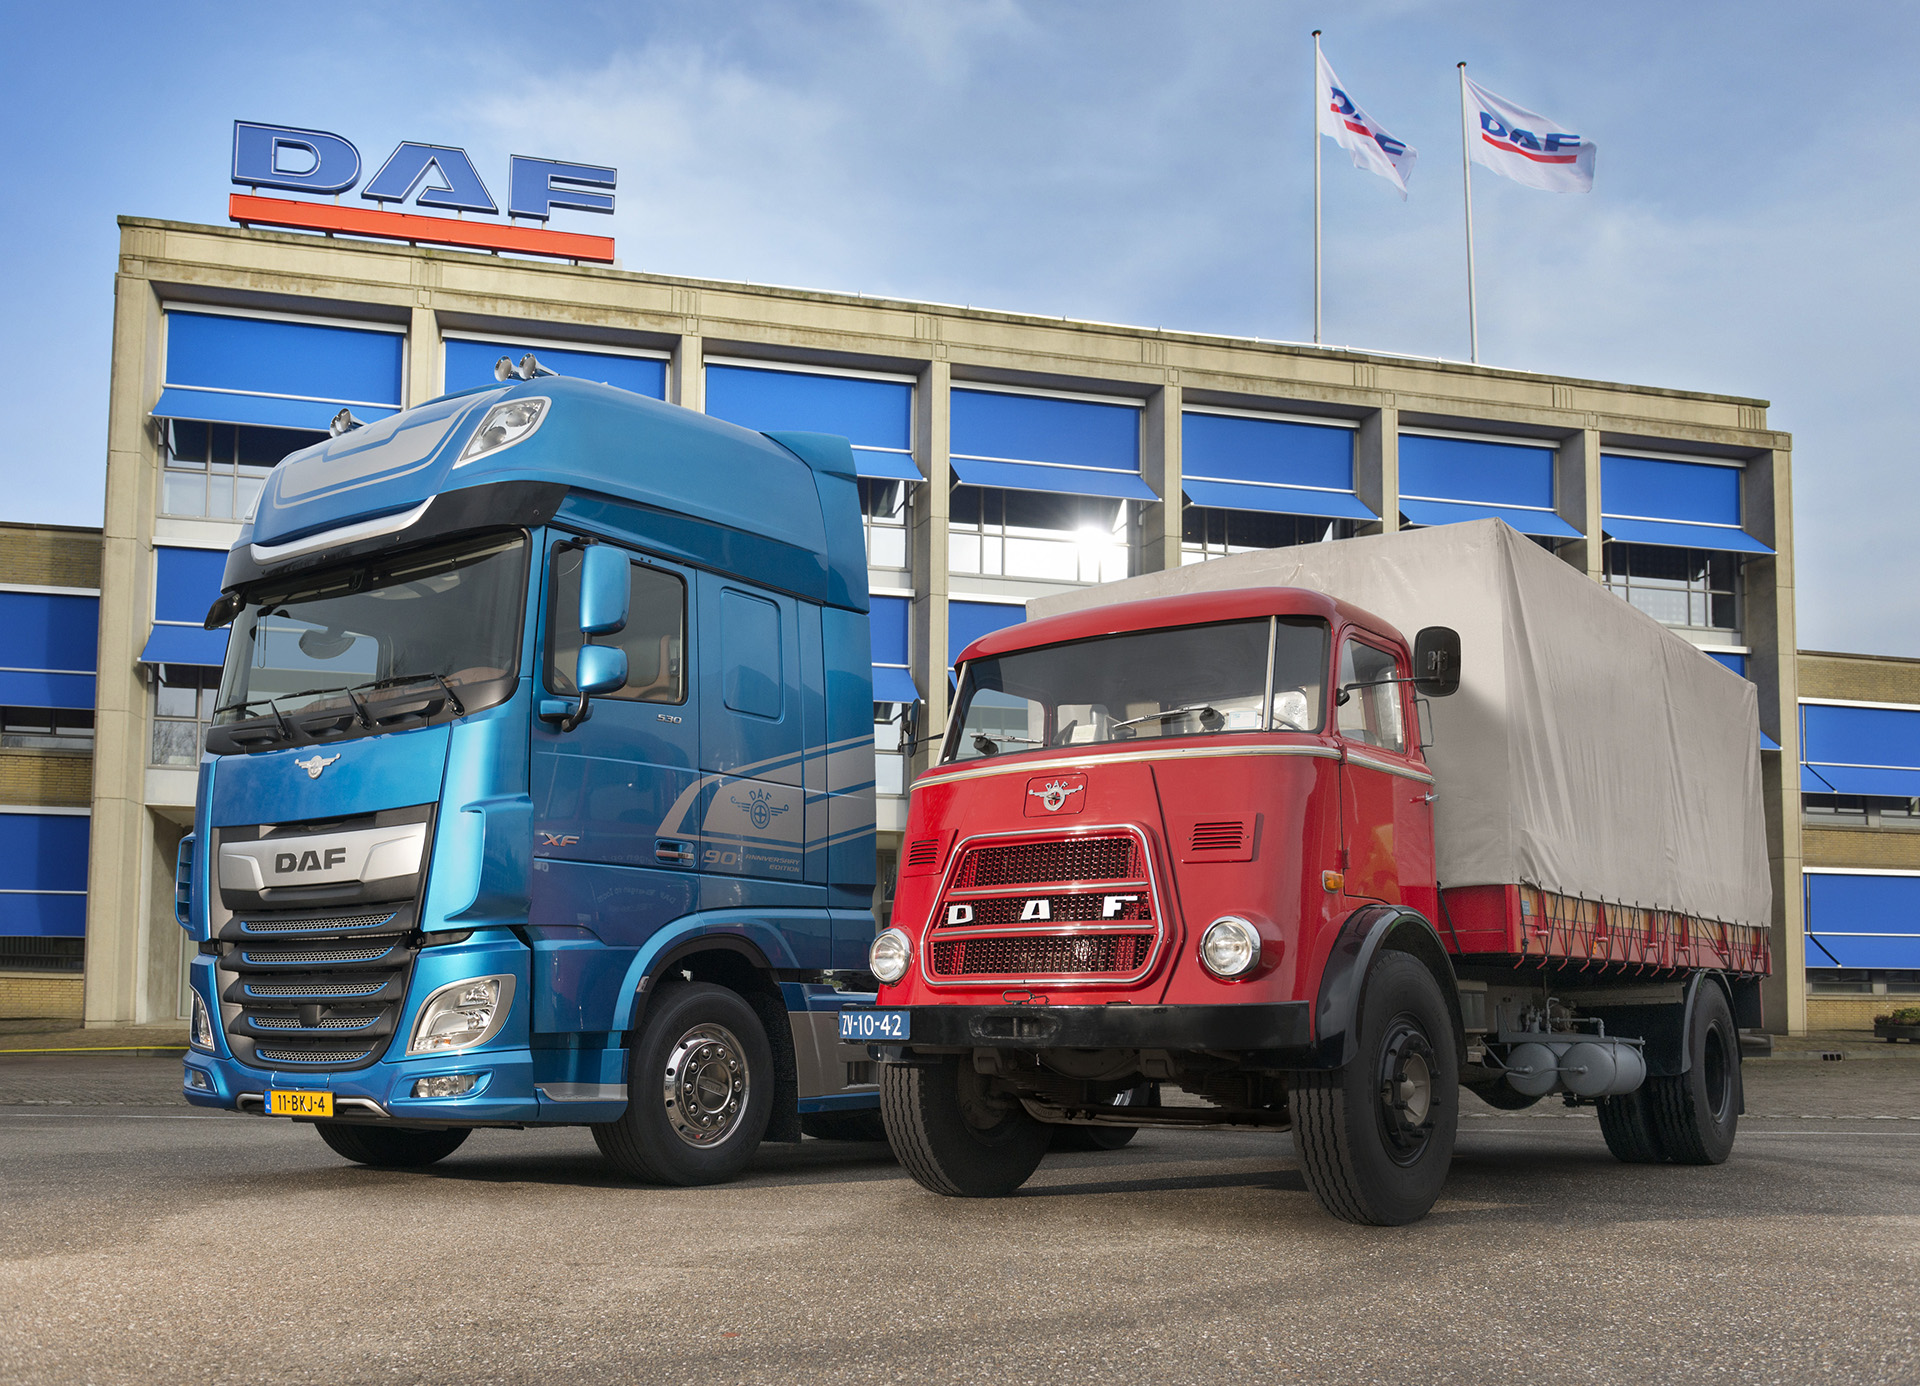 90 Years of DAF DAF New XF and DAF A1800